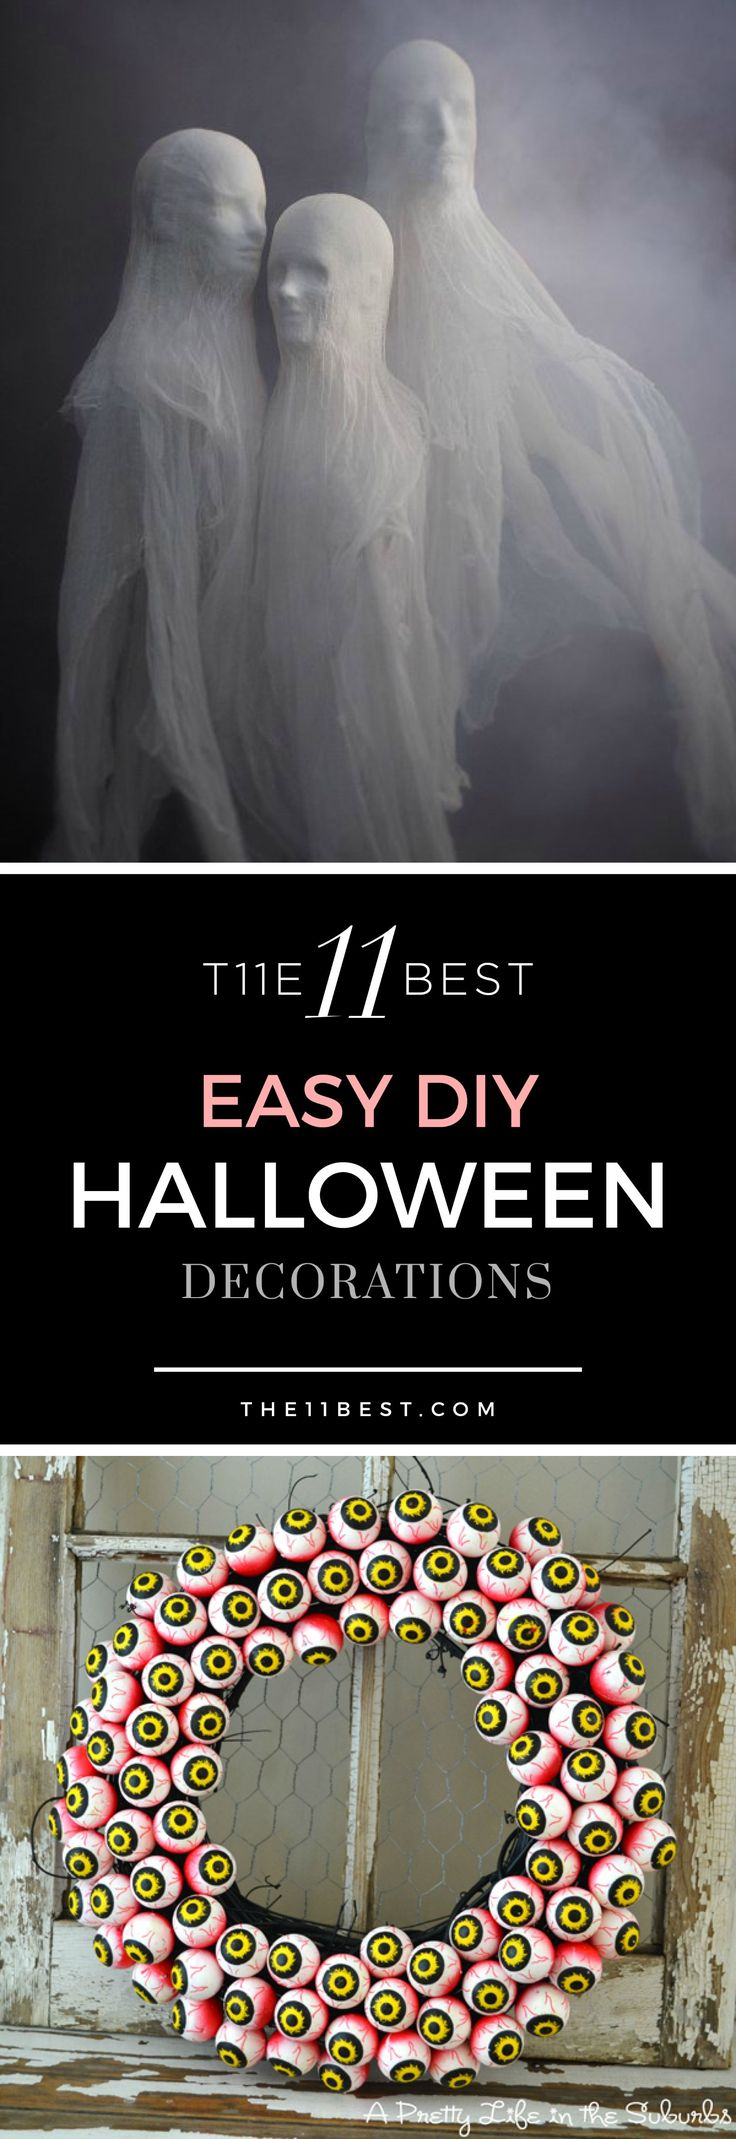 The 11 Best EASY DIY Halloween Decorations from Want...Need...Love!